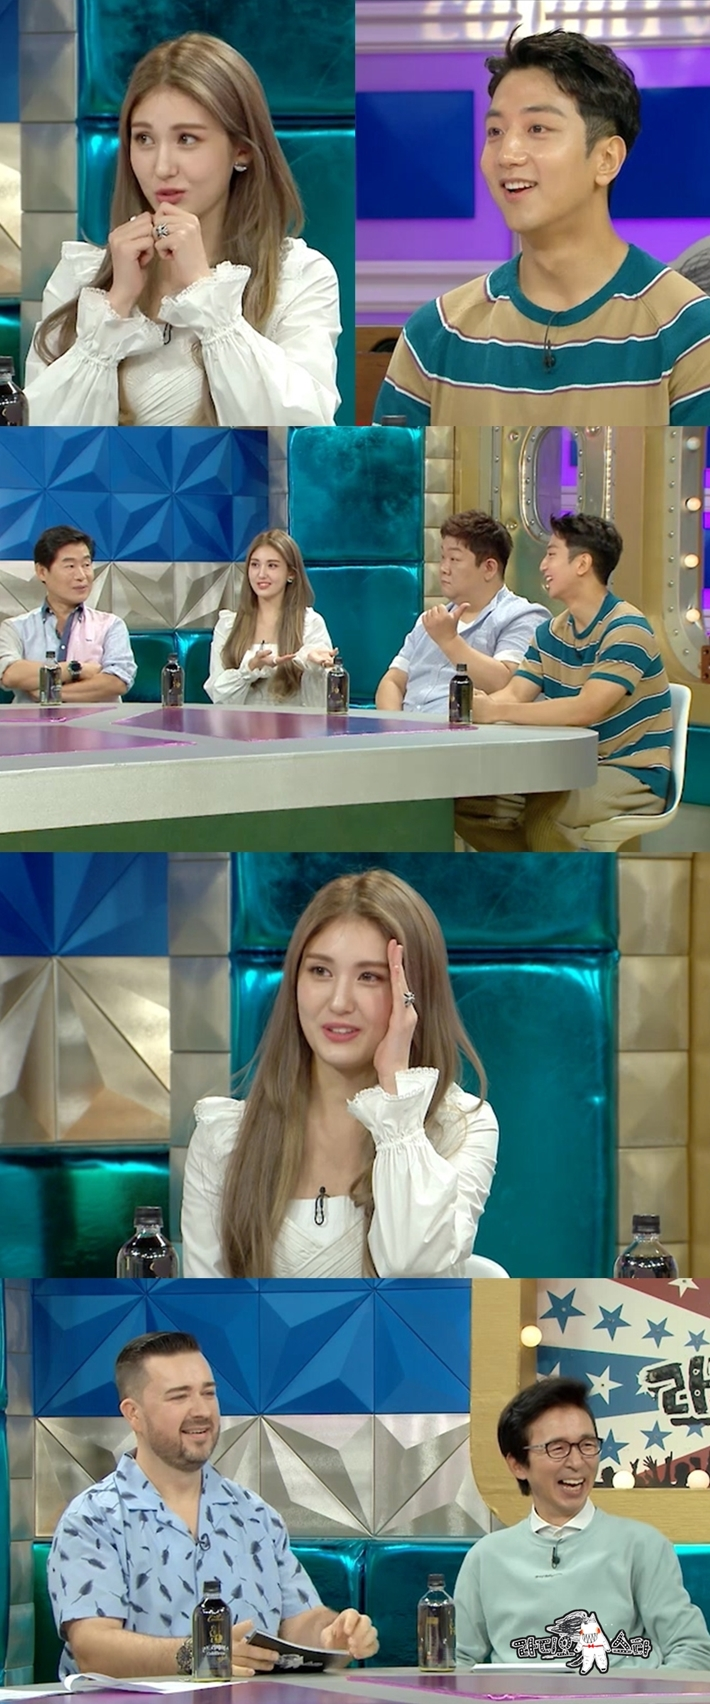 'Radio Star' Jeon So-mi X Heo Hoon, after the first contact with Ponting... awkward X subtle airflow